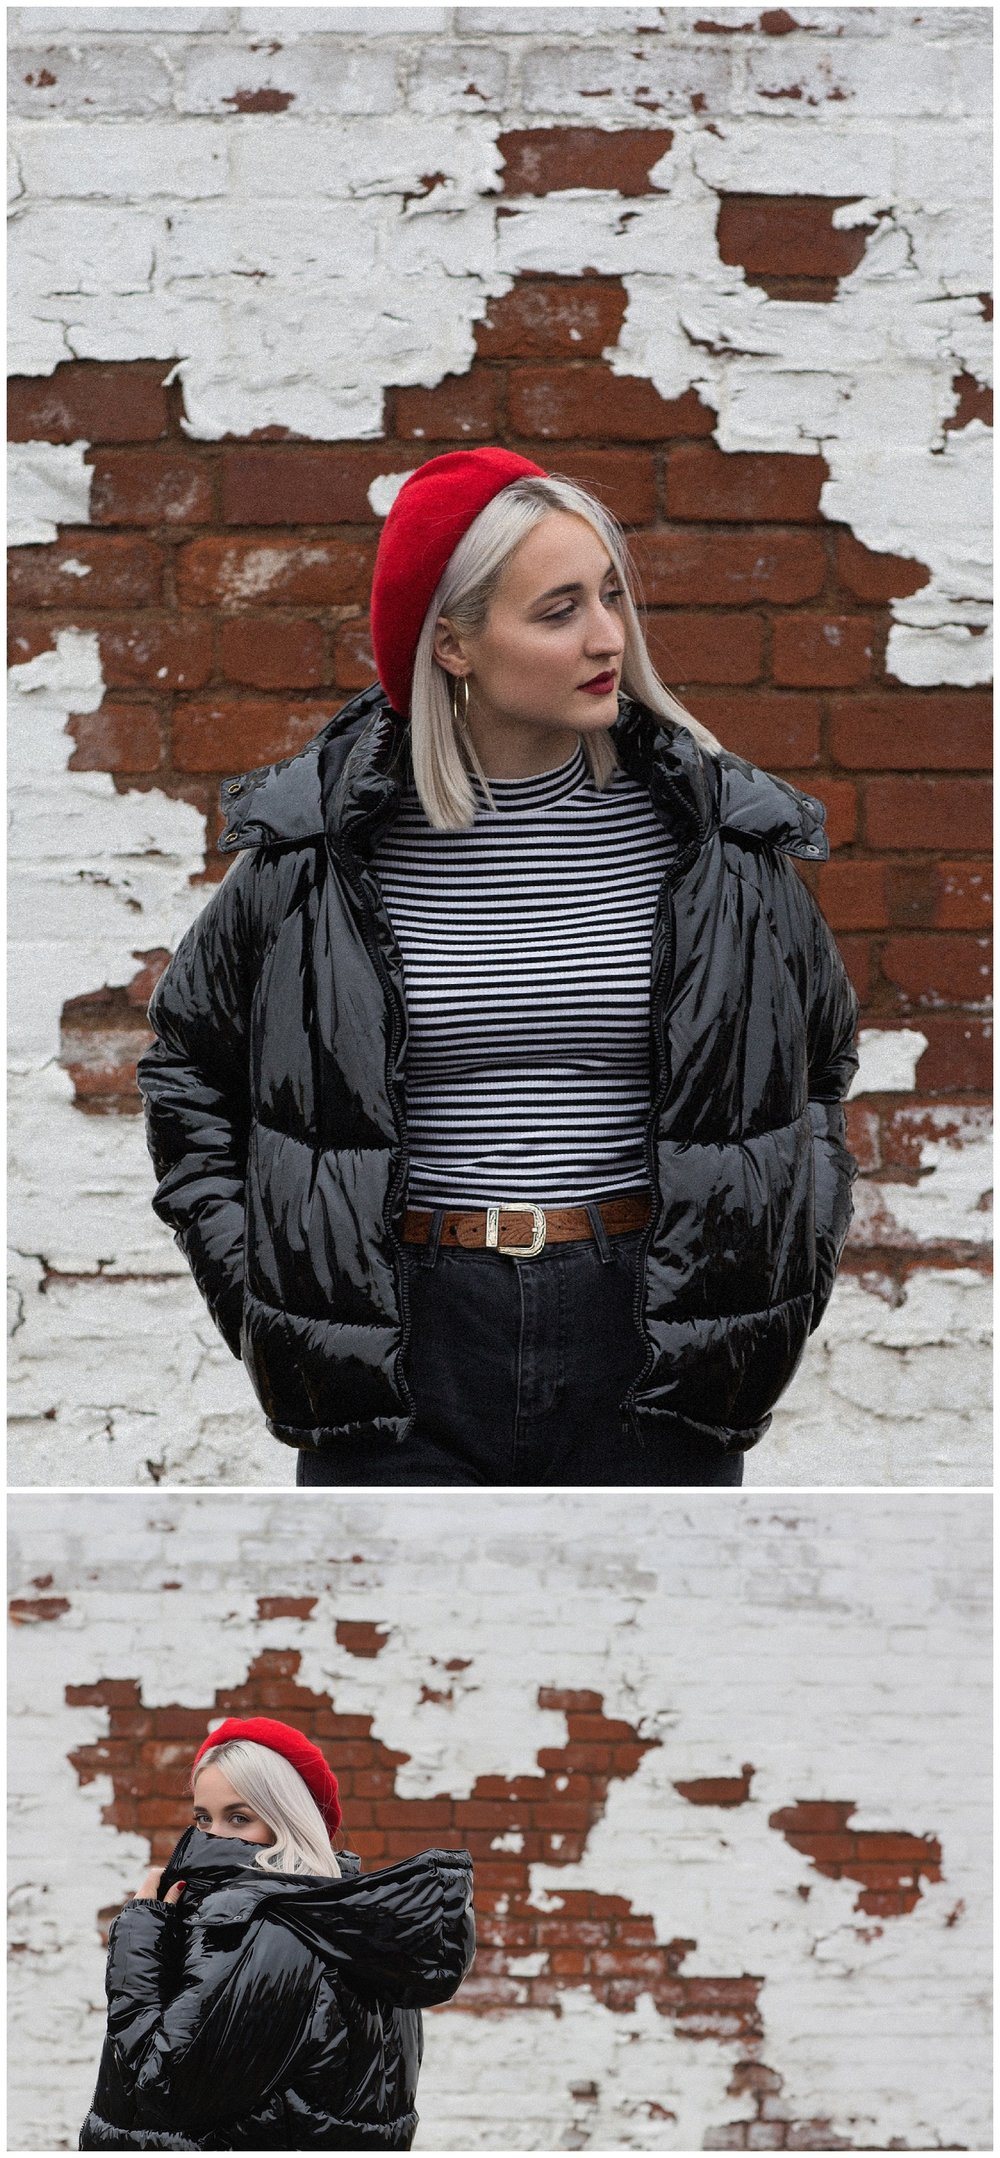 Black Shiny Patent Puffa Jacket - Topshop - Jessica Withey - Fashion Blogger - Blog